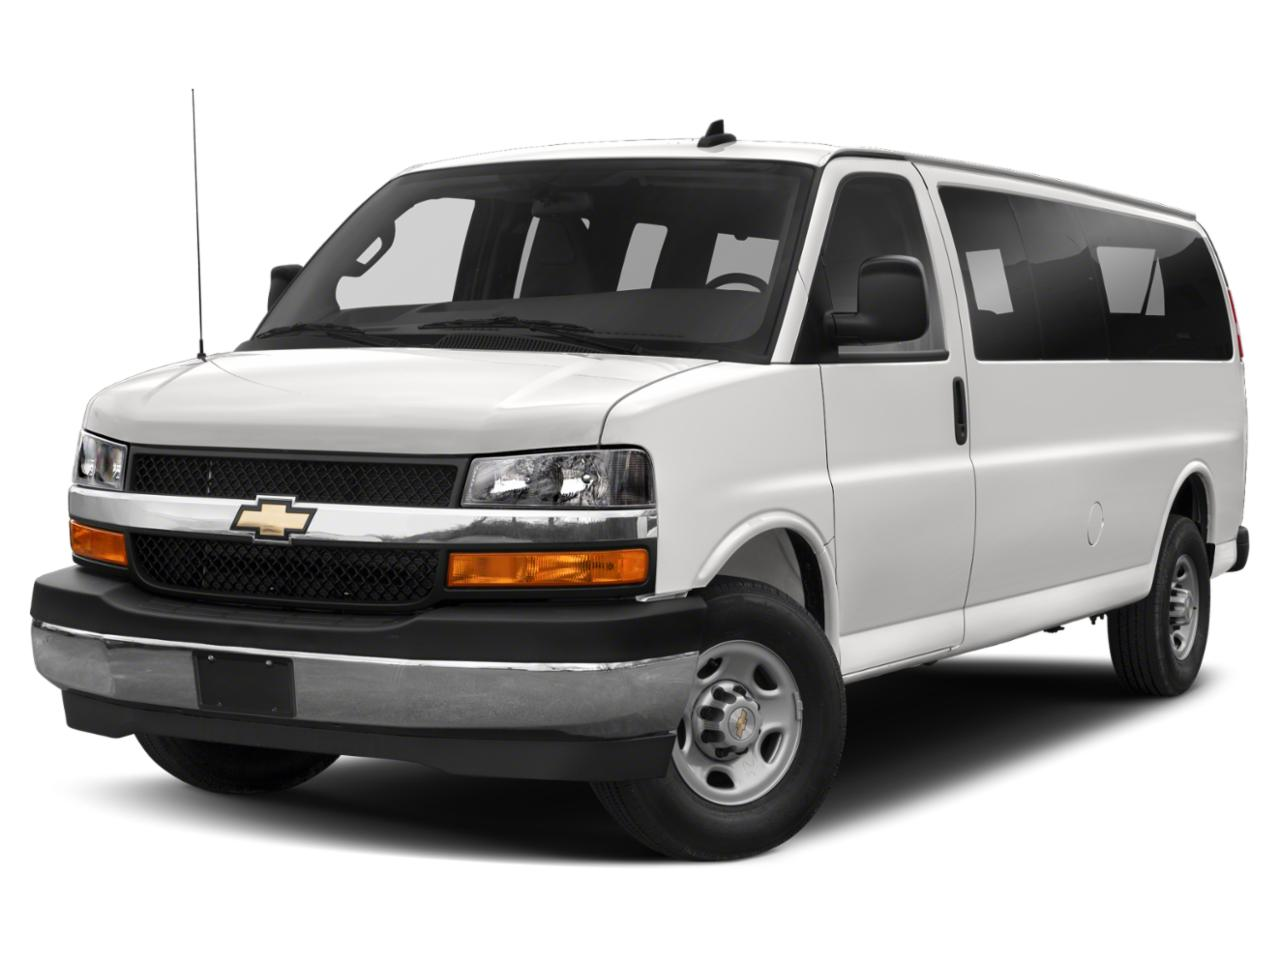 2020 Chevrolet Express Cargo Van Vehicle Photo in Burlington, WI 53105